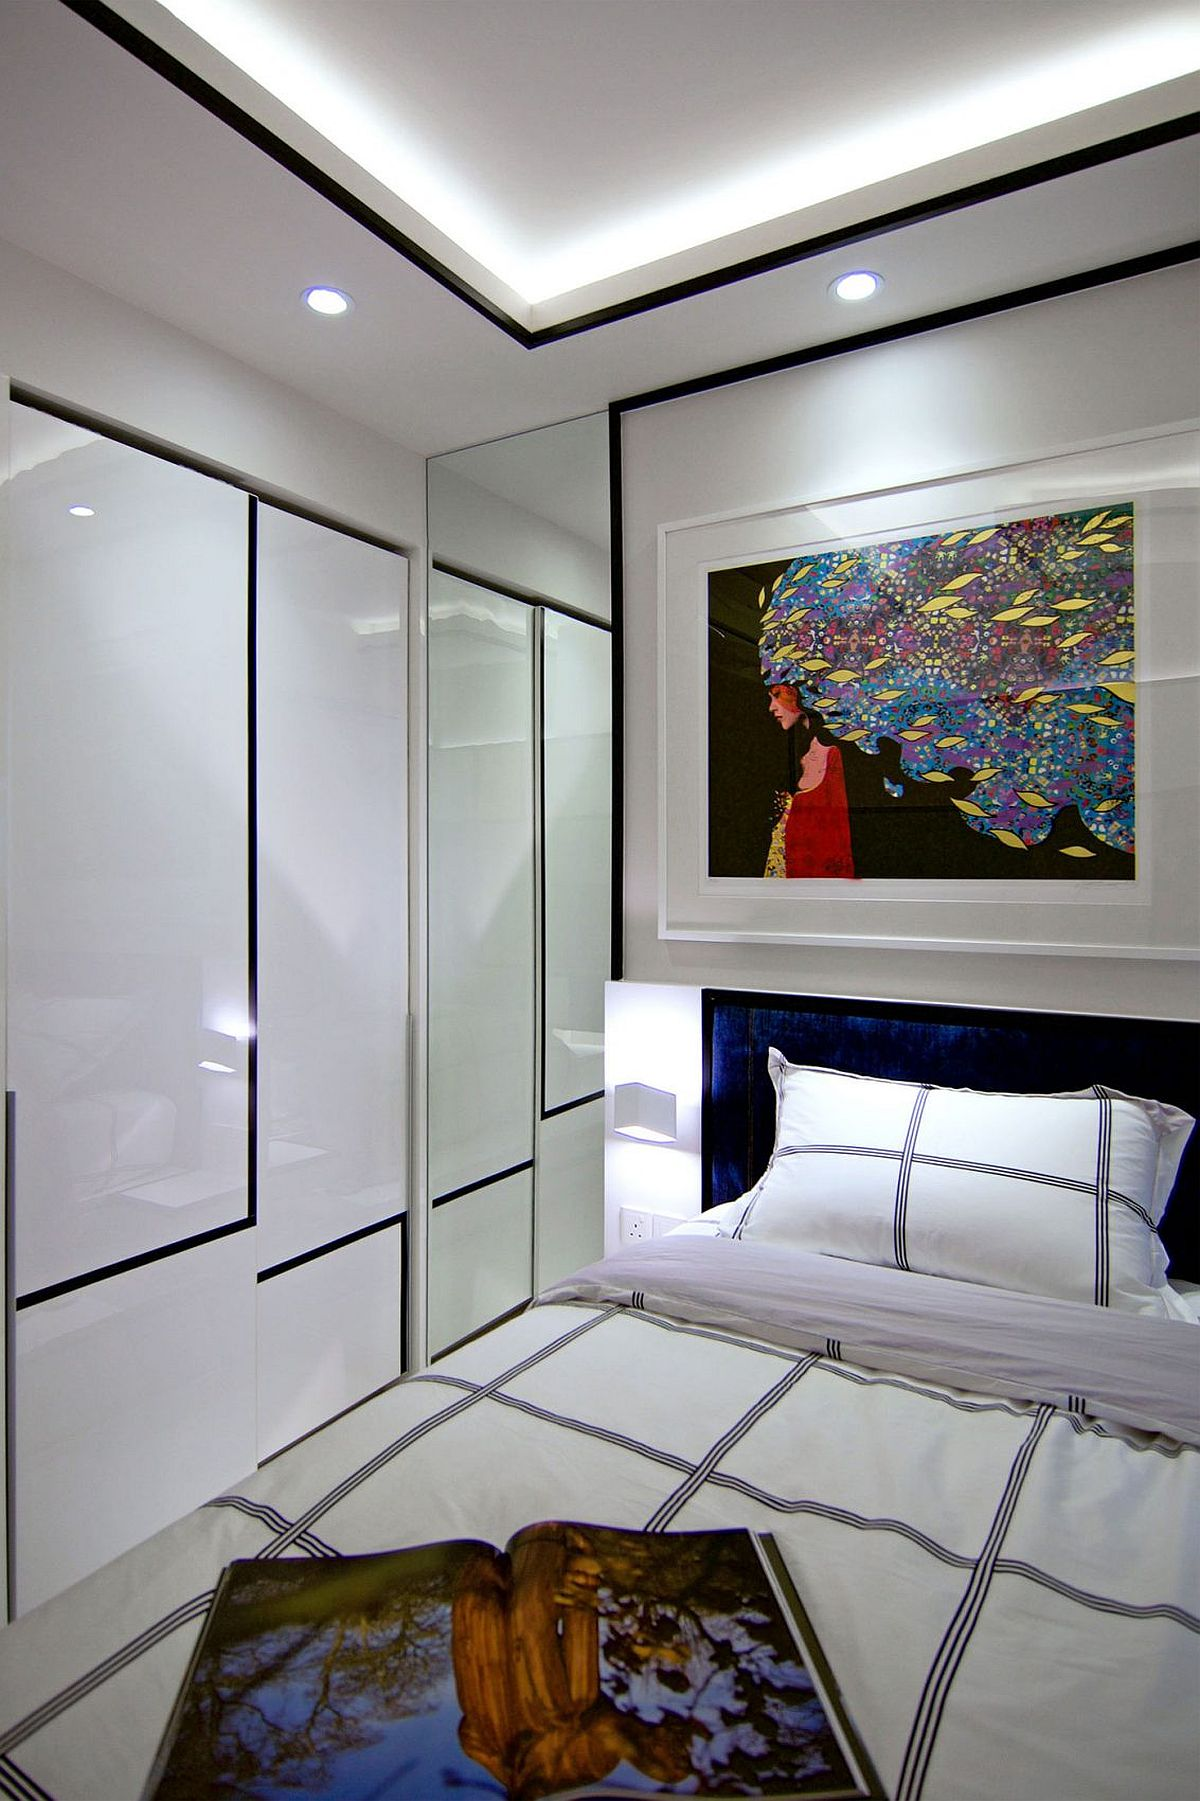 Lovers of De Stijl art will adore these fabulous bedrooms of the rejuvinated Singapore home